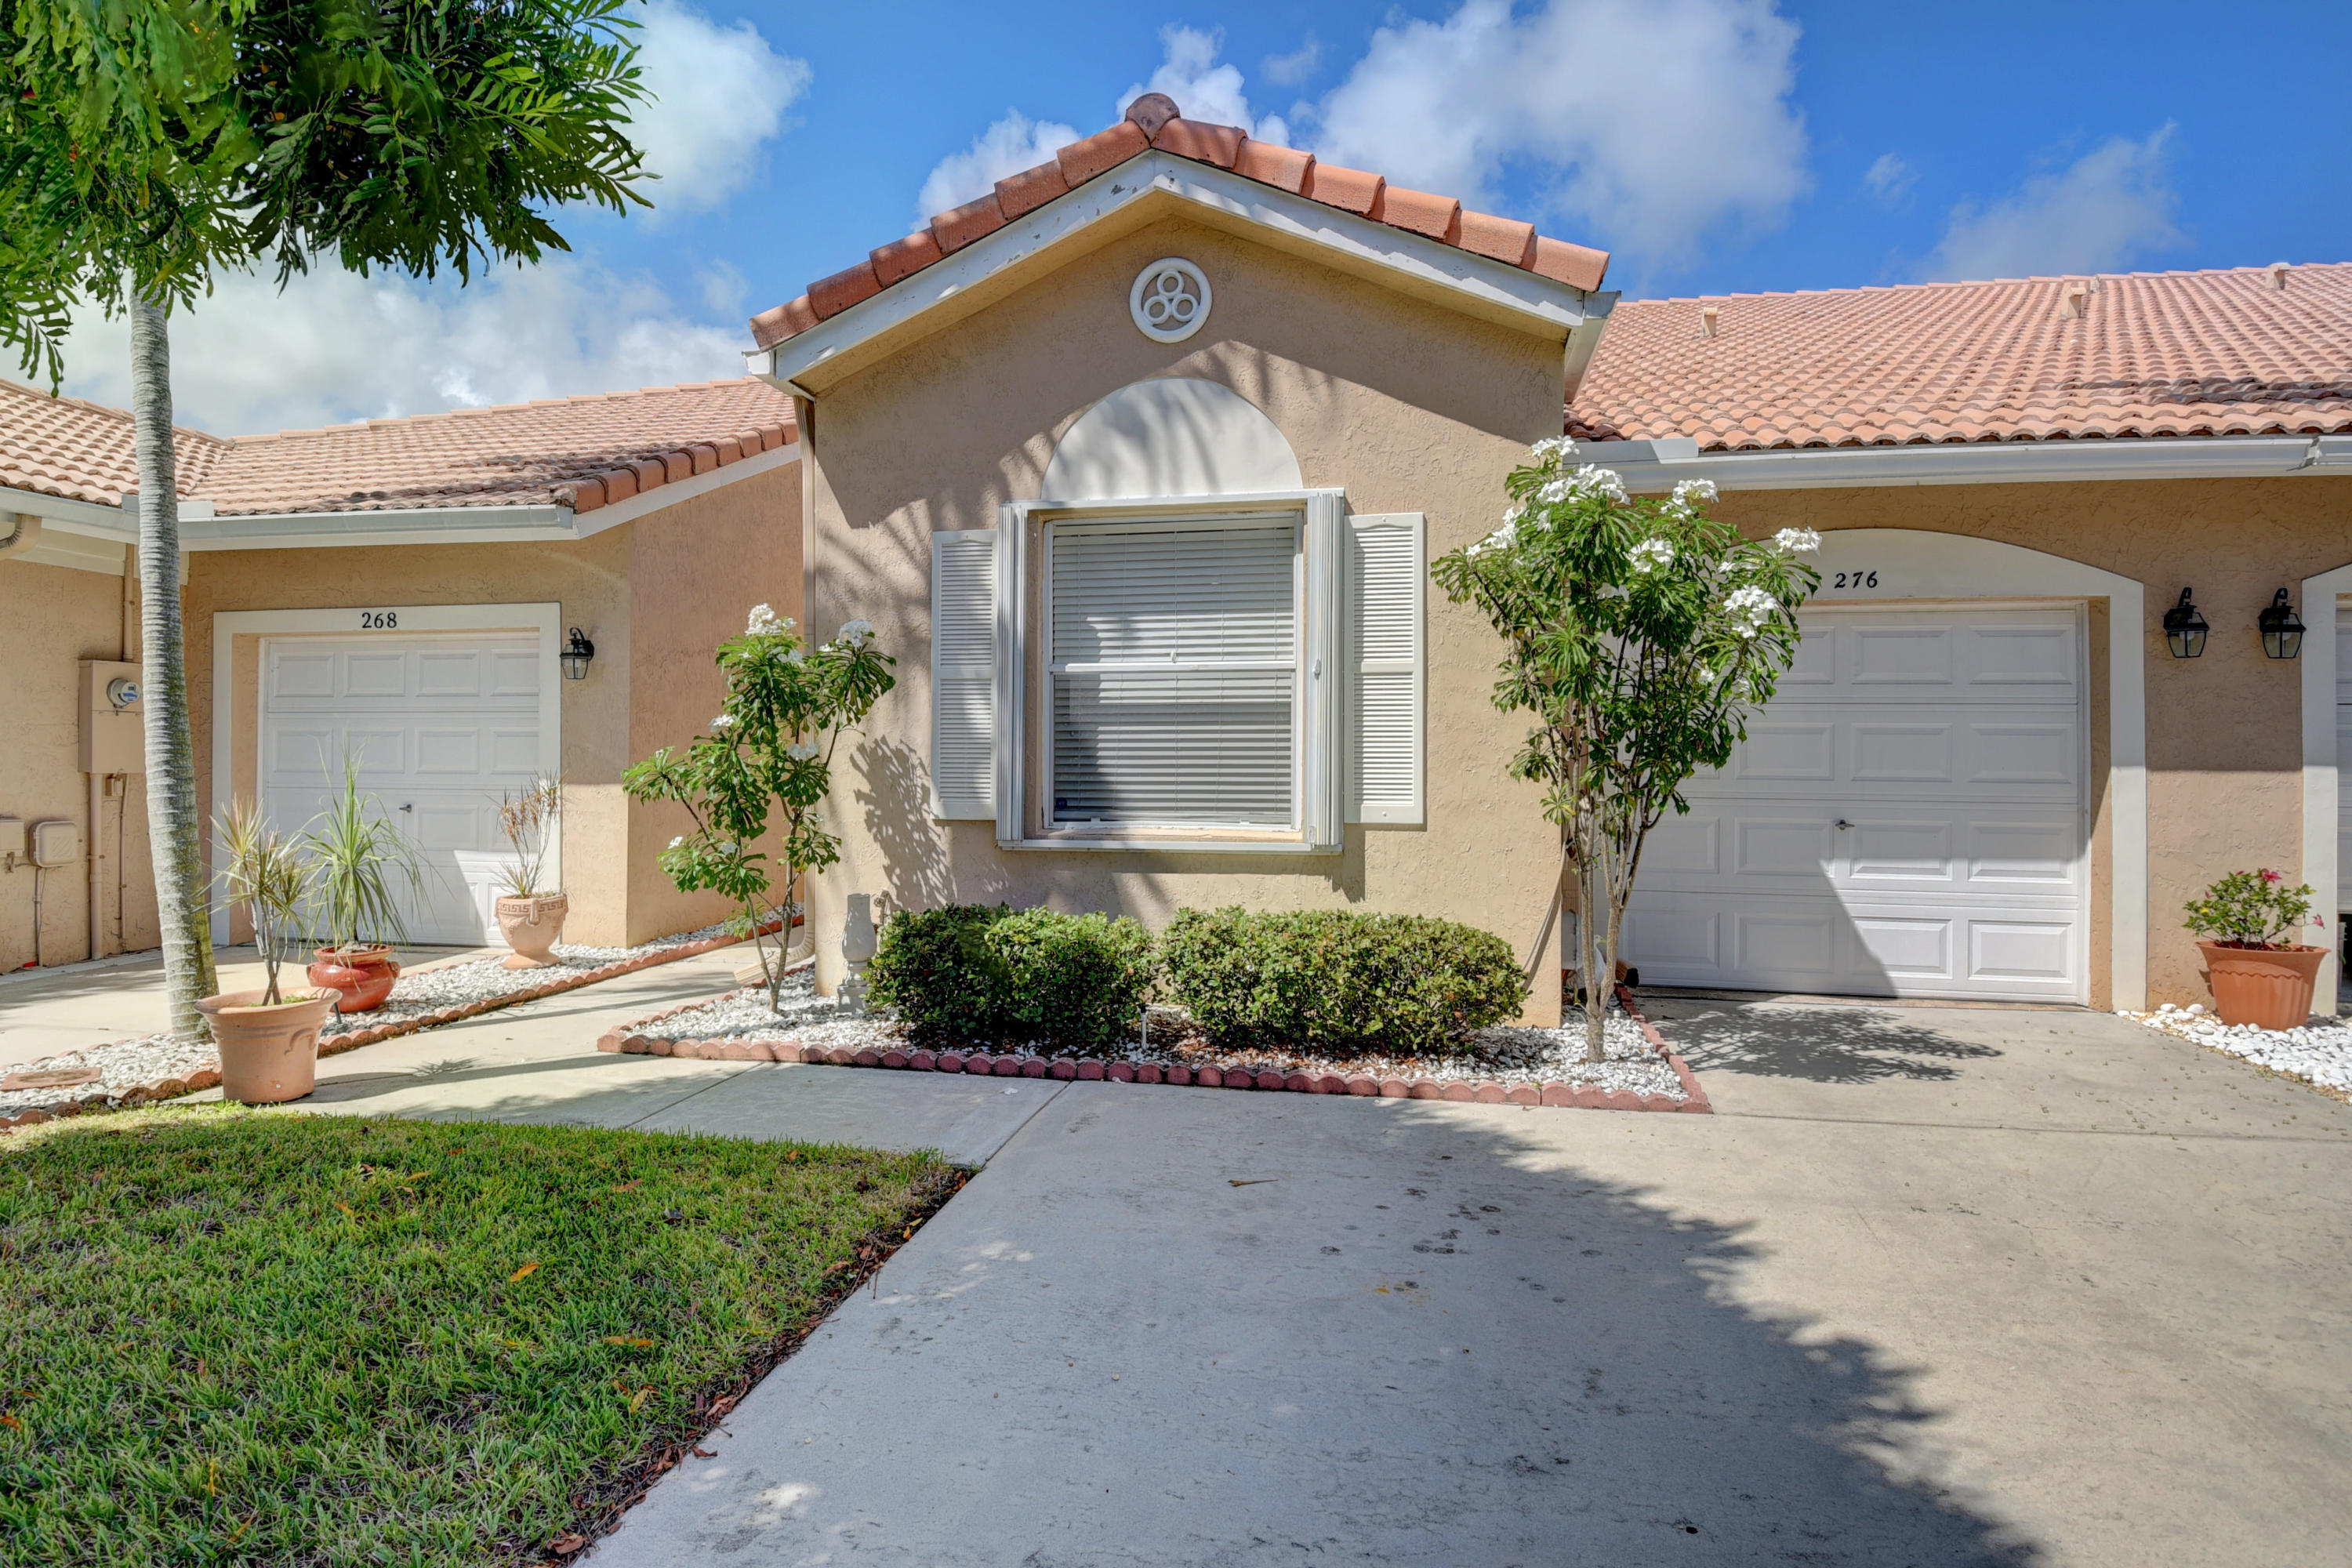 Enjoy this all age villa which is close to downtown Delray and the beach.   It boasts an oversized tiled patio that overlooks the lake.   The villa is tiled throughout, vaulted ceilings, laundry room and has an attached garage. All window have easy to close accordion shutters.  This gated community has low association fees and is able to have FHA financing. The community is beautifully manicured with a pool that is heated in the winter and cooled in the summer.  Click the link for a virtual tour.